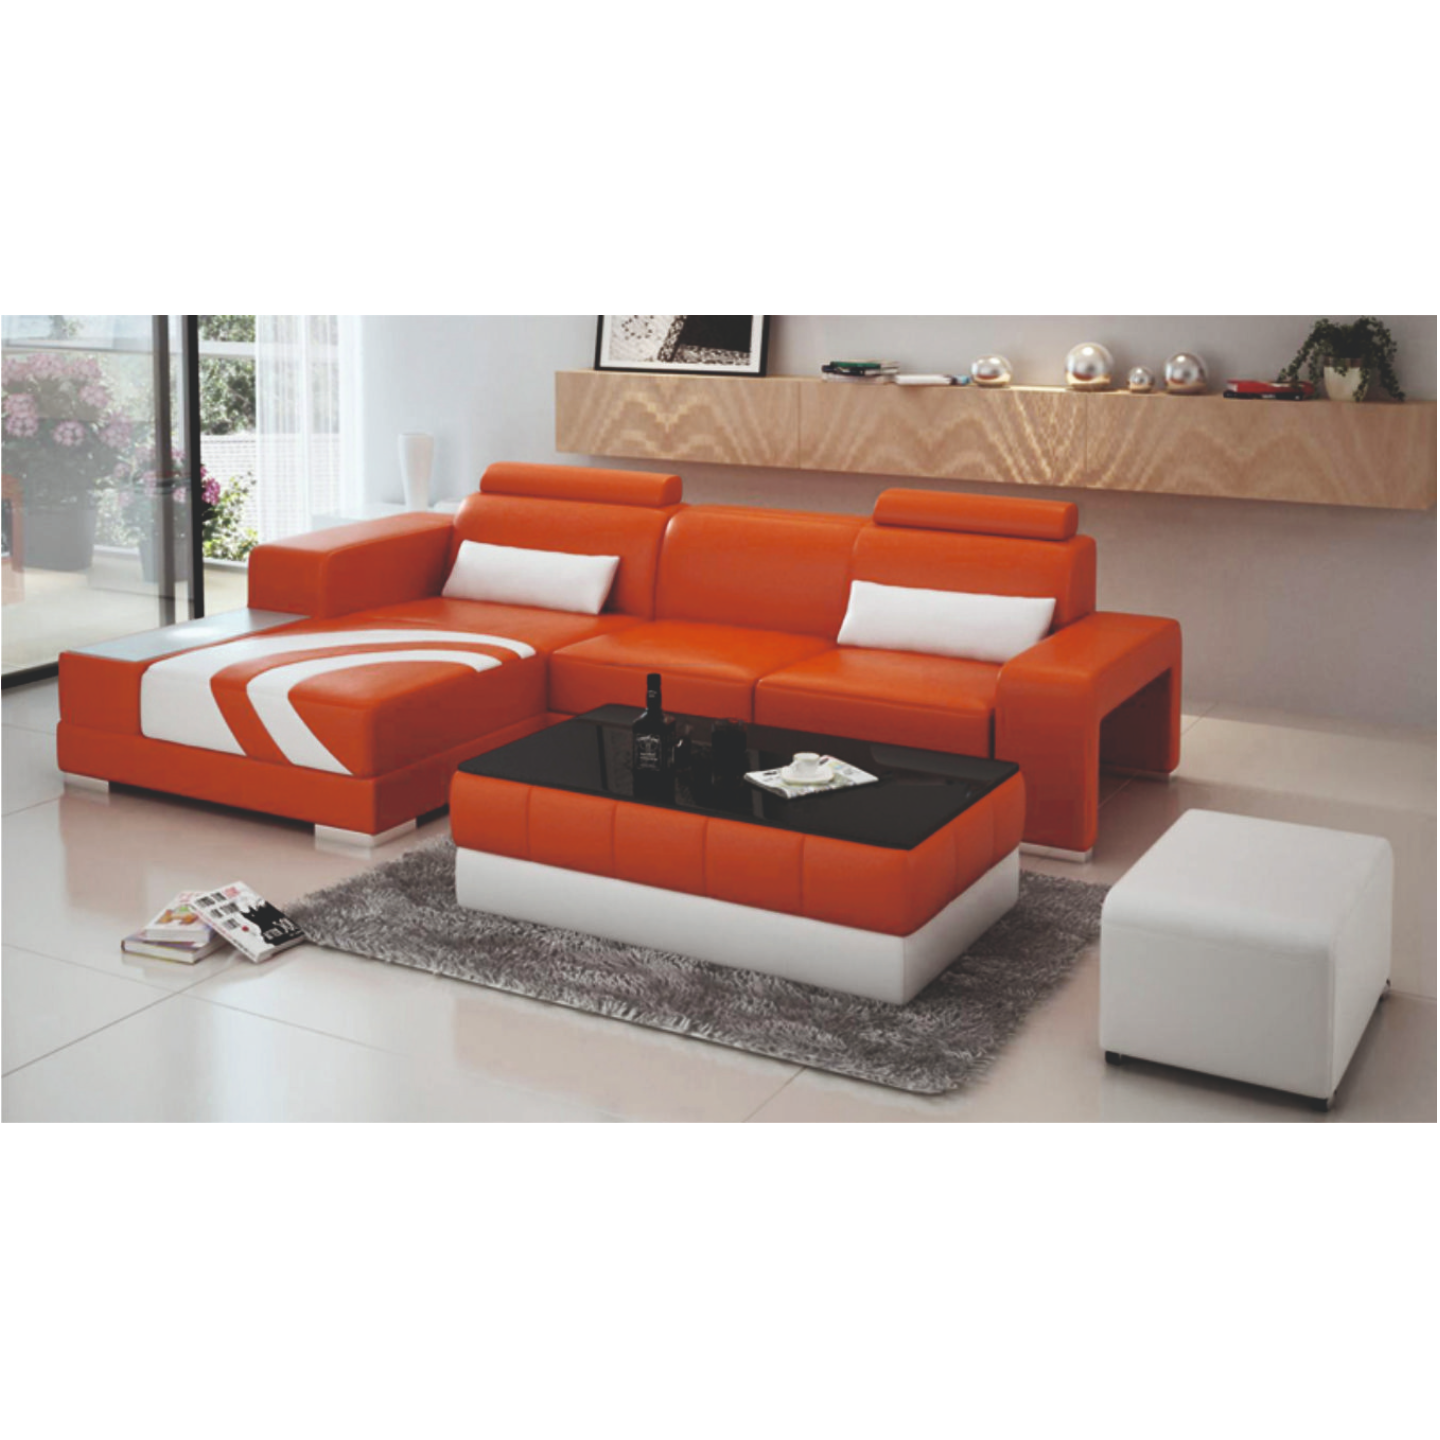 Reva Left side Lounger Sofa (FC55)